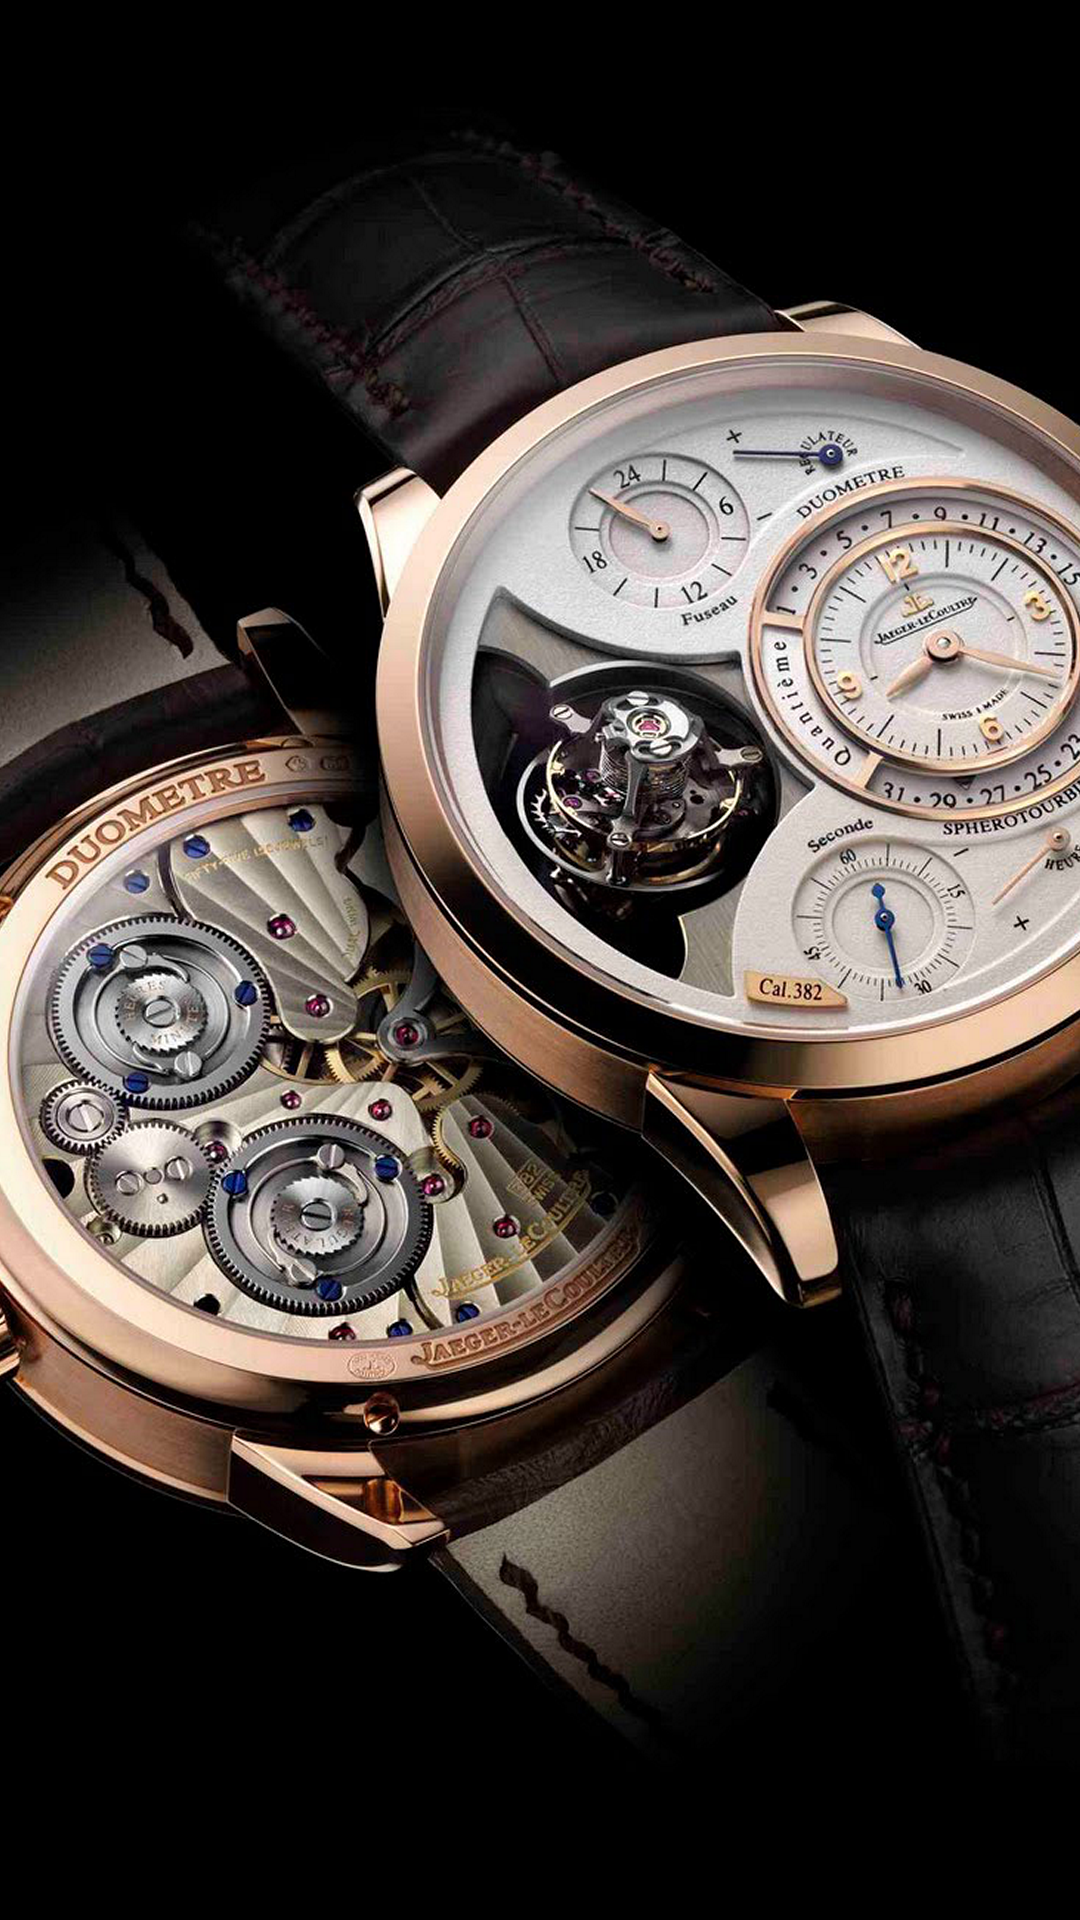 Wallpapers For Galaxy Jaeger Lecoultre Luxury Watch